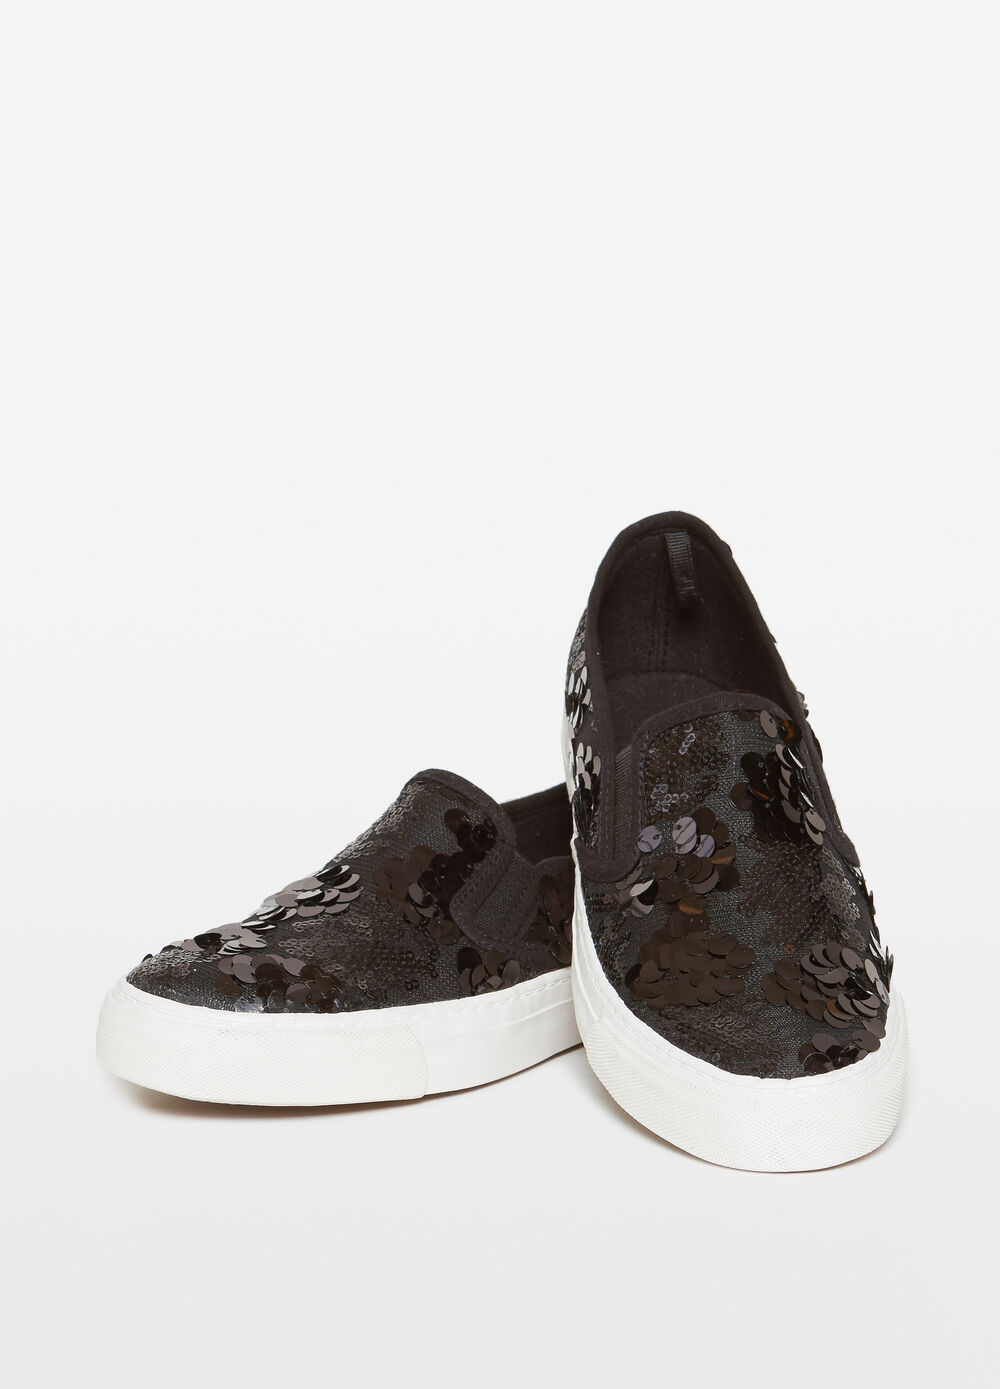 Slip-ons with sequins